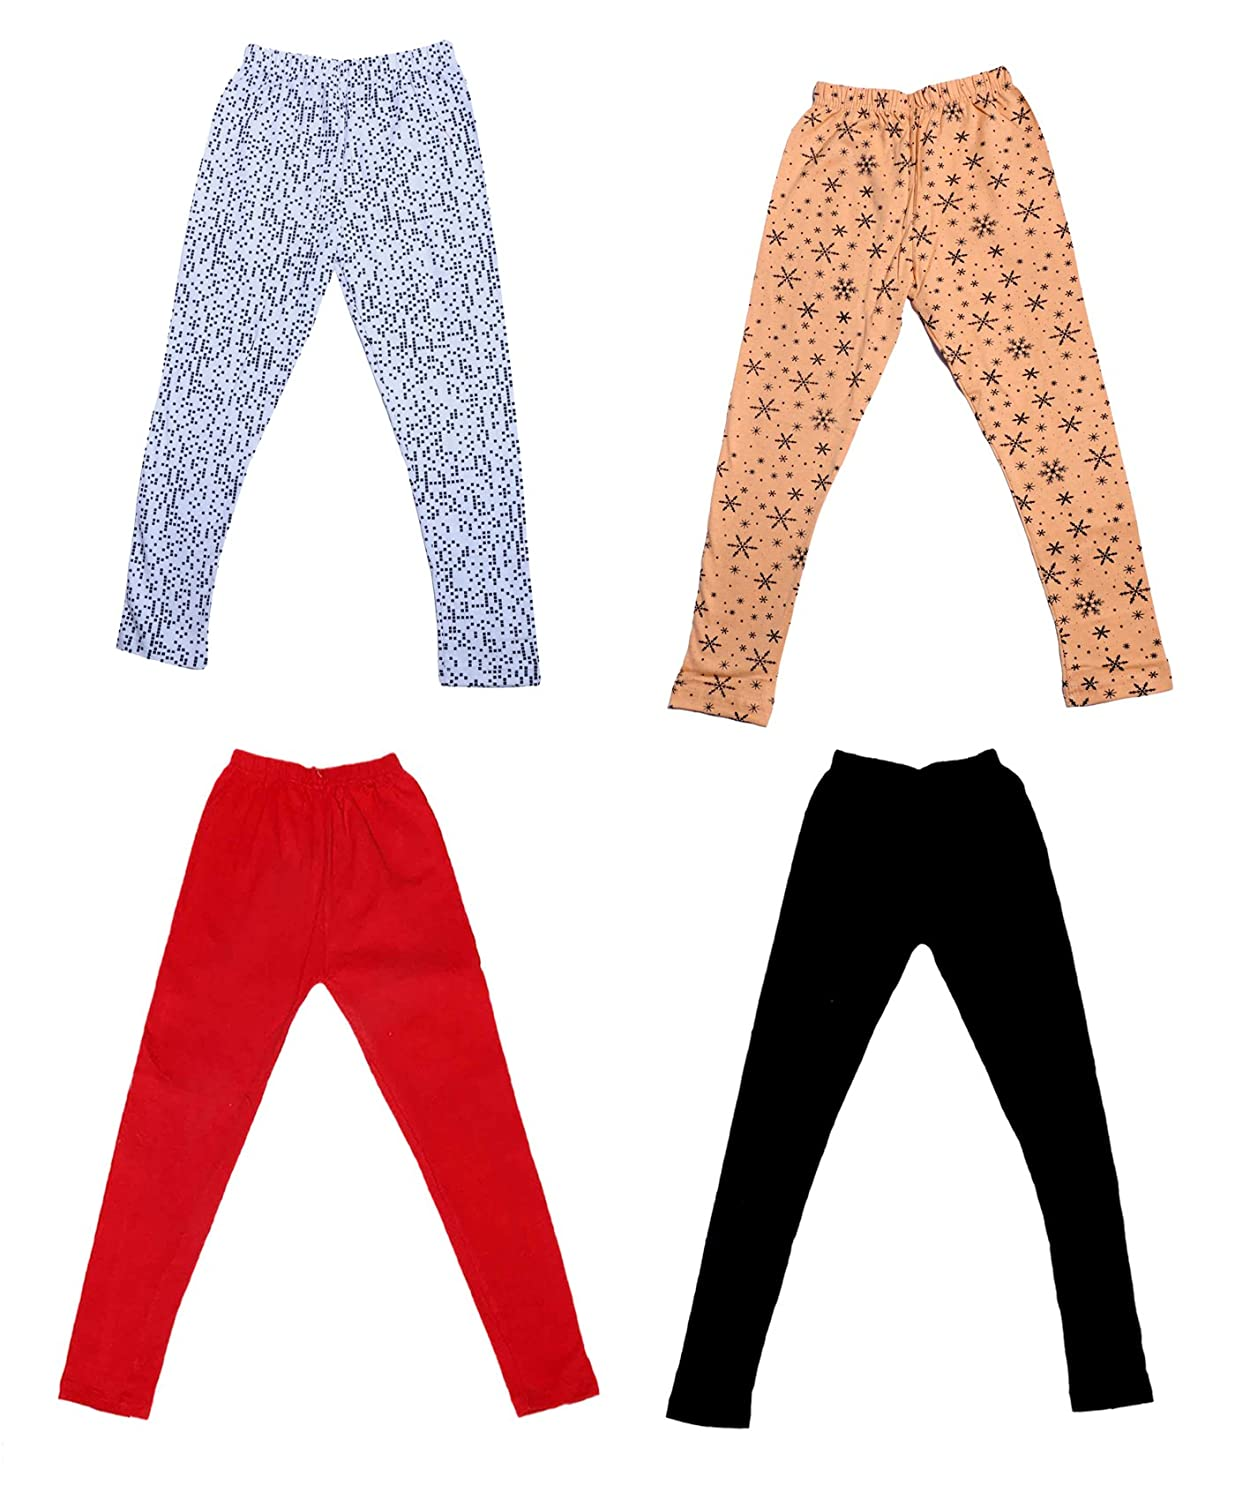 Pack Of 4 /_Multicolor/_Size-4-5 Years/_71404051921-IW-P4-26 and 2 Cotton Printed Legging Pants Indistar Girls 2 Cotton Solid Legging Pants